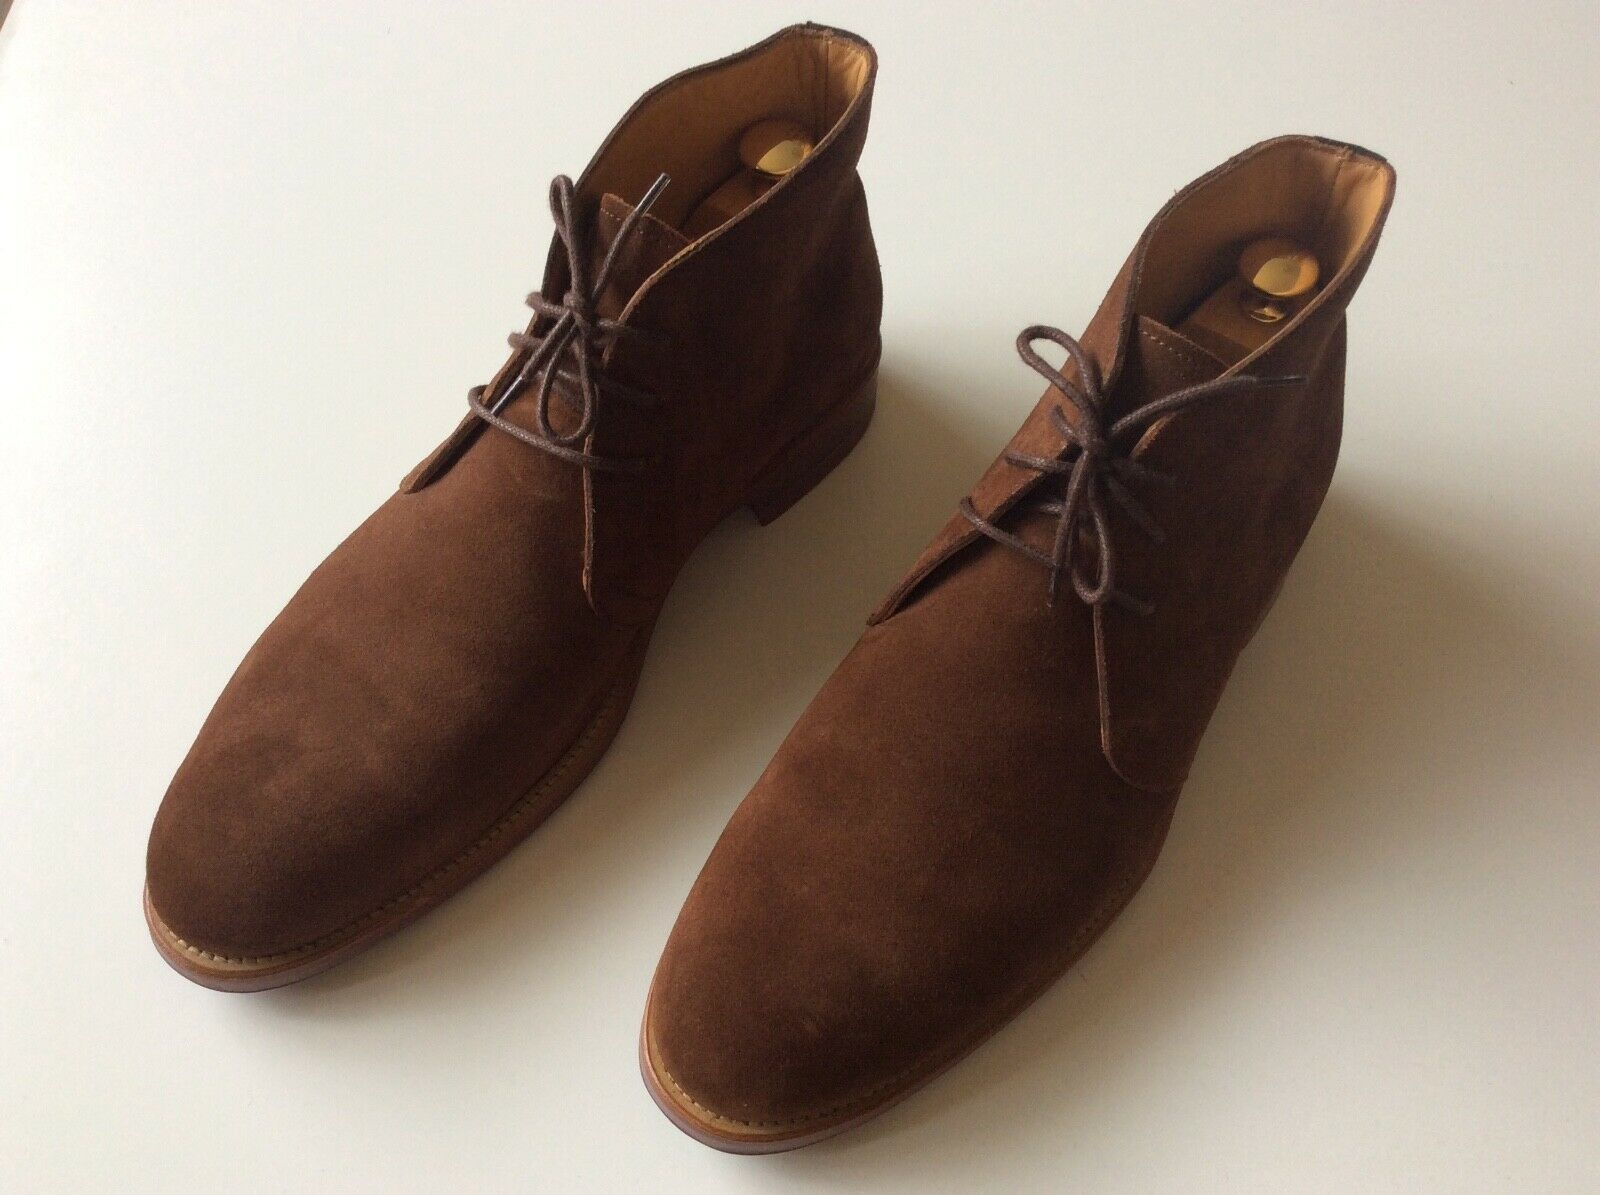 FINSBURY STEED brown suede boots size US 11 FR 44